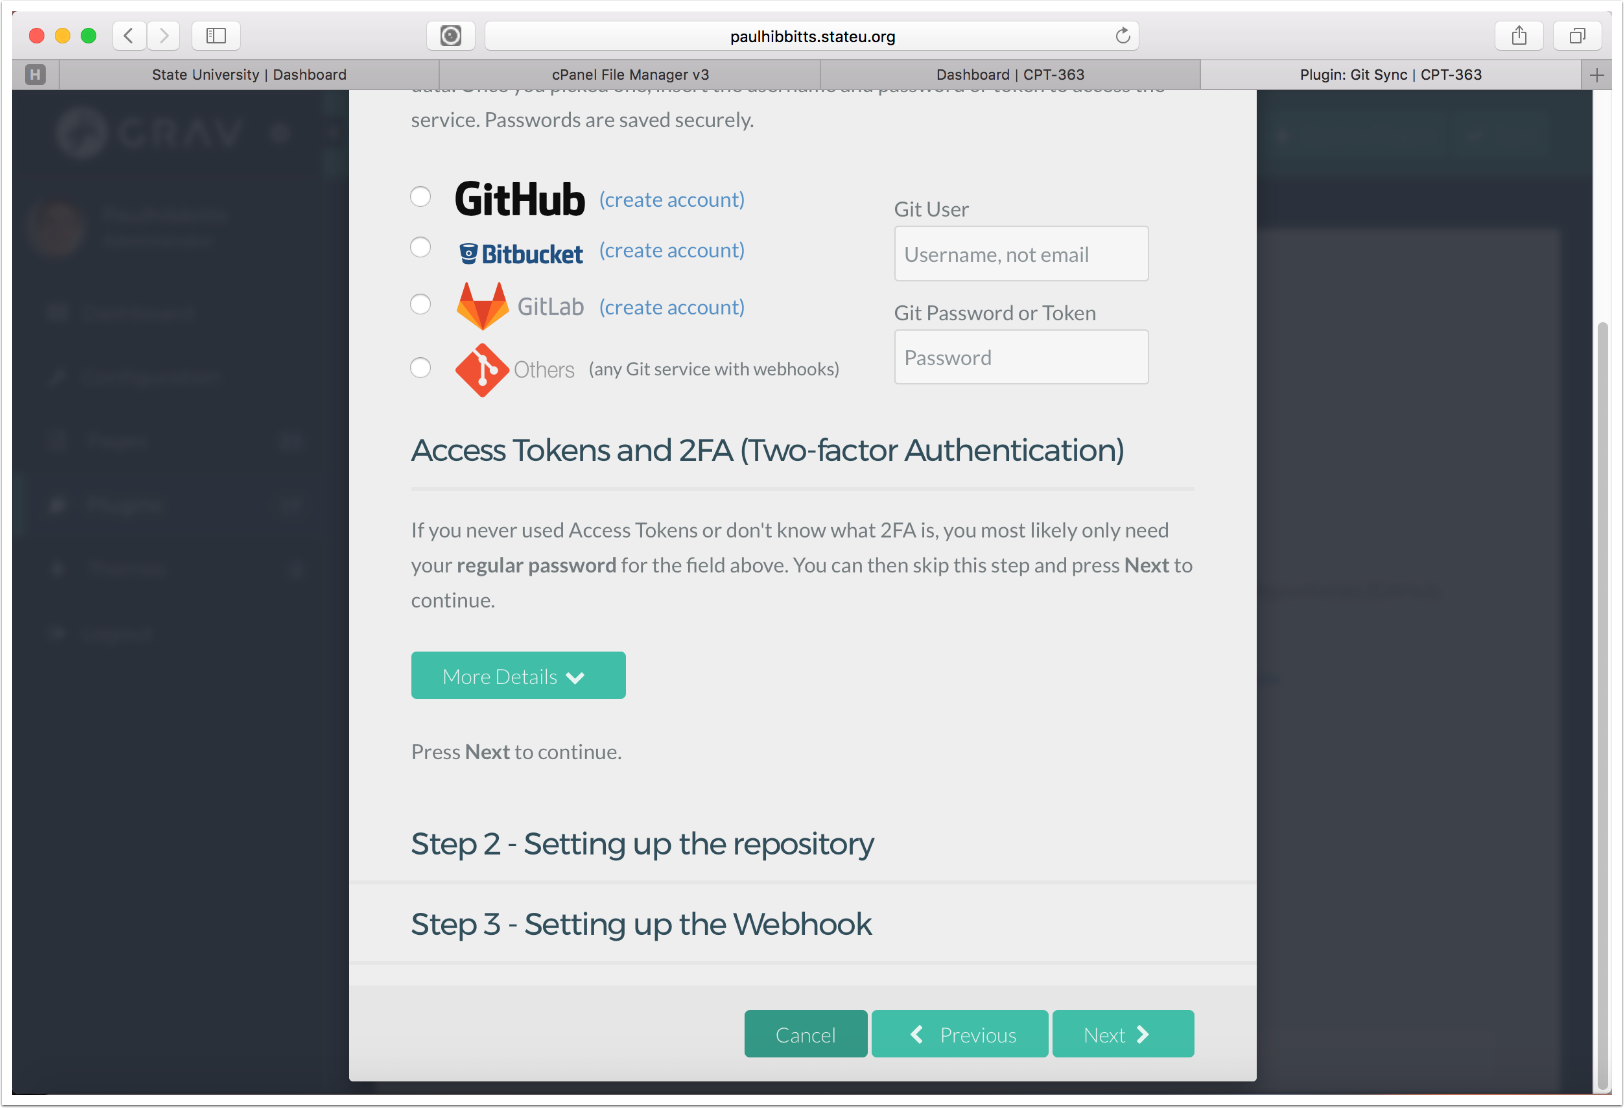 3.3 Choose the Git service and enter your username and password for it